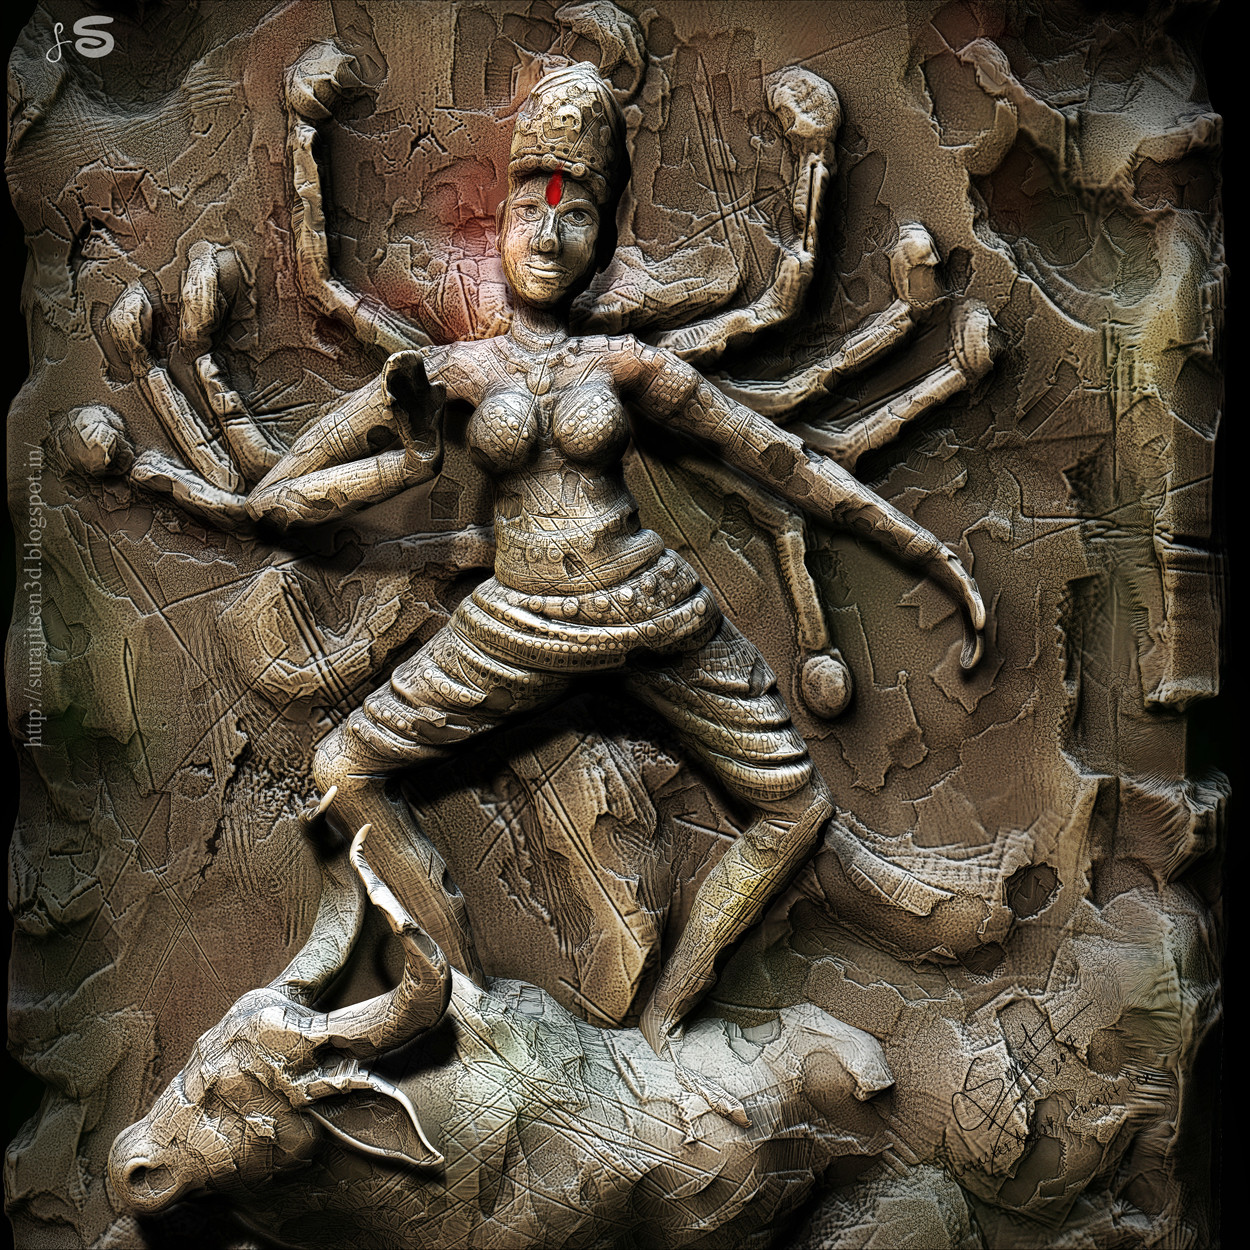 In this artwork I depicted Devi Durga as 'MahishasuraMardini' in a digital clay sculpting.... From being 'Chinmoyee'(Supreme Consciousness) to 'Mrinmoyee'(Made in clay).